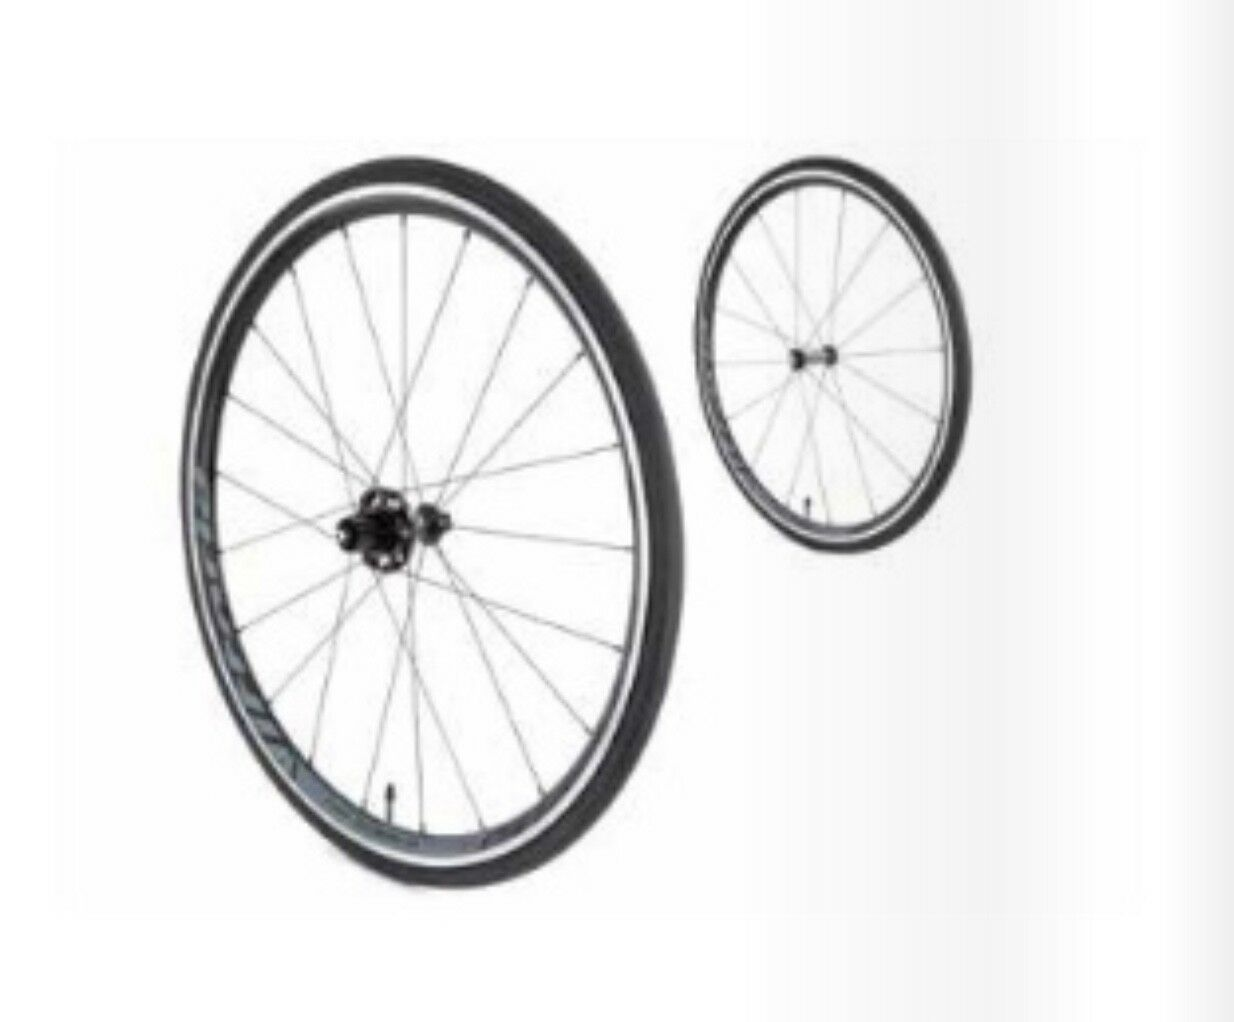 PAIRE ROUES VÉLO  VITTORIA ROAD TACTIC course ALUMINIUM course performance  the newest brands outlet online